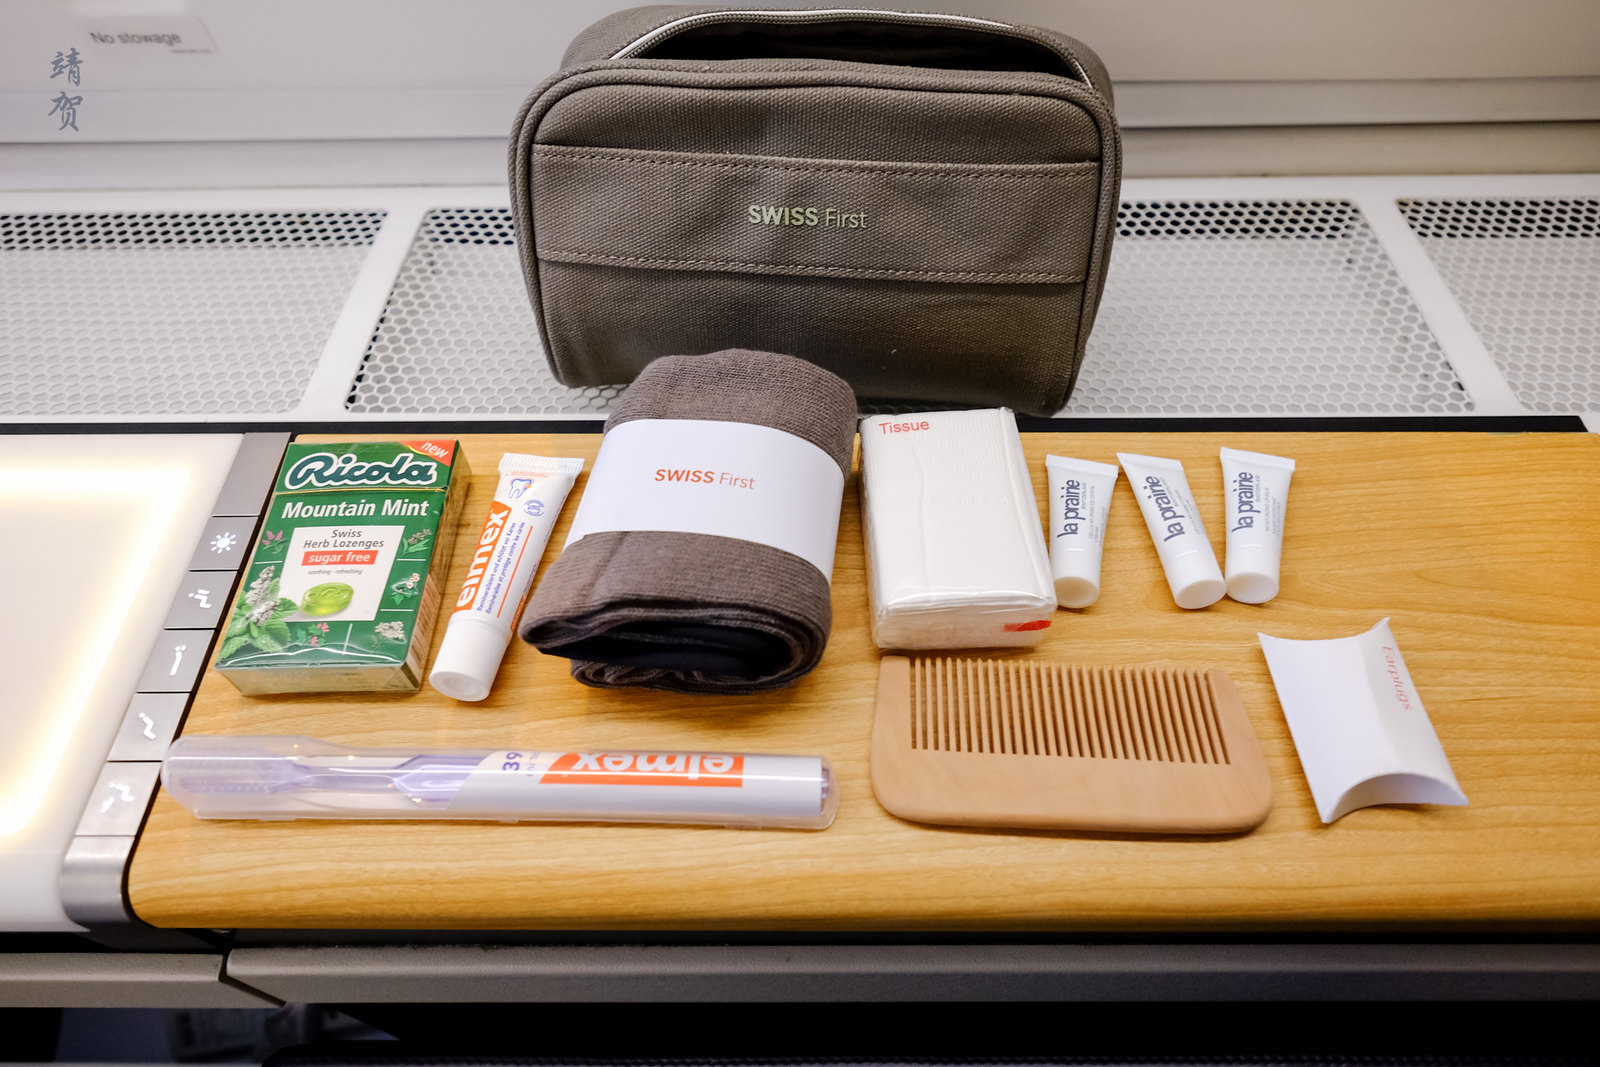 Swiss First Amenity Kit